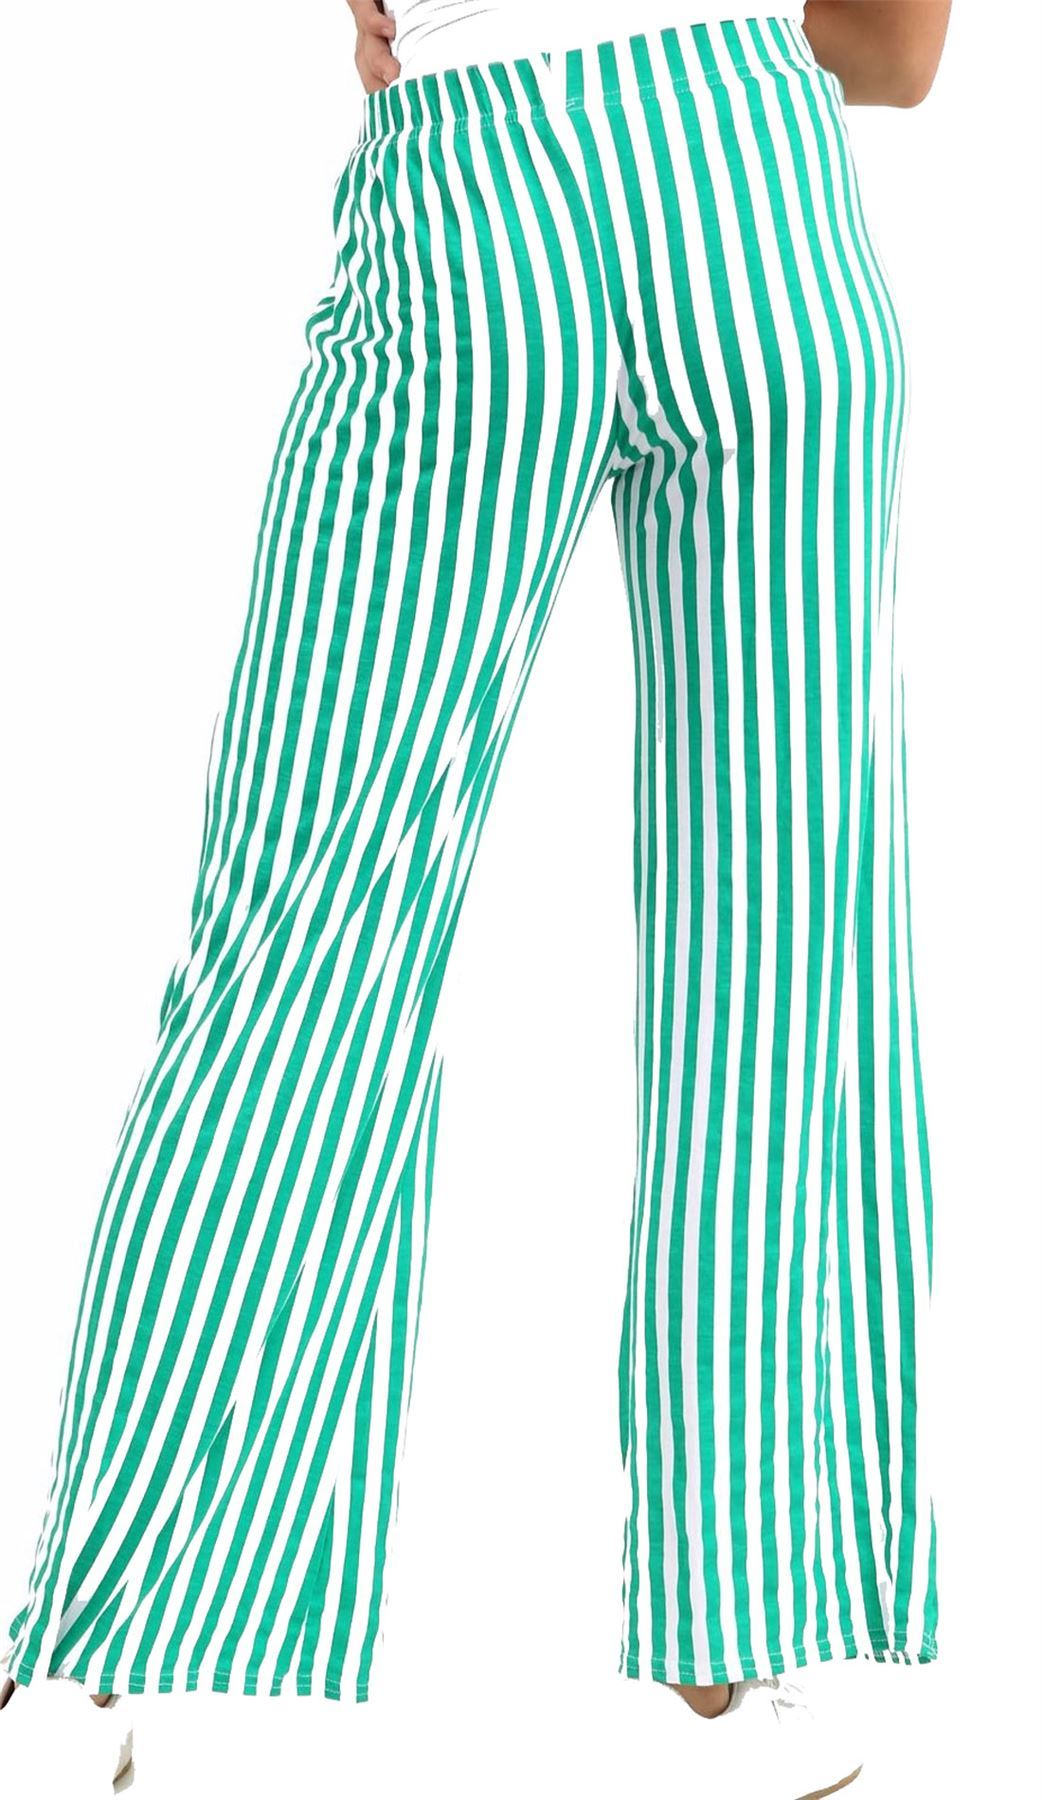 New-Ladies-Floral-Printed-Wide-Leg-Flared-Parallel-Baggy-Trousers-Pants-Palazzo thumbnail 18